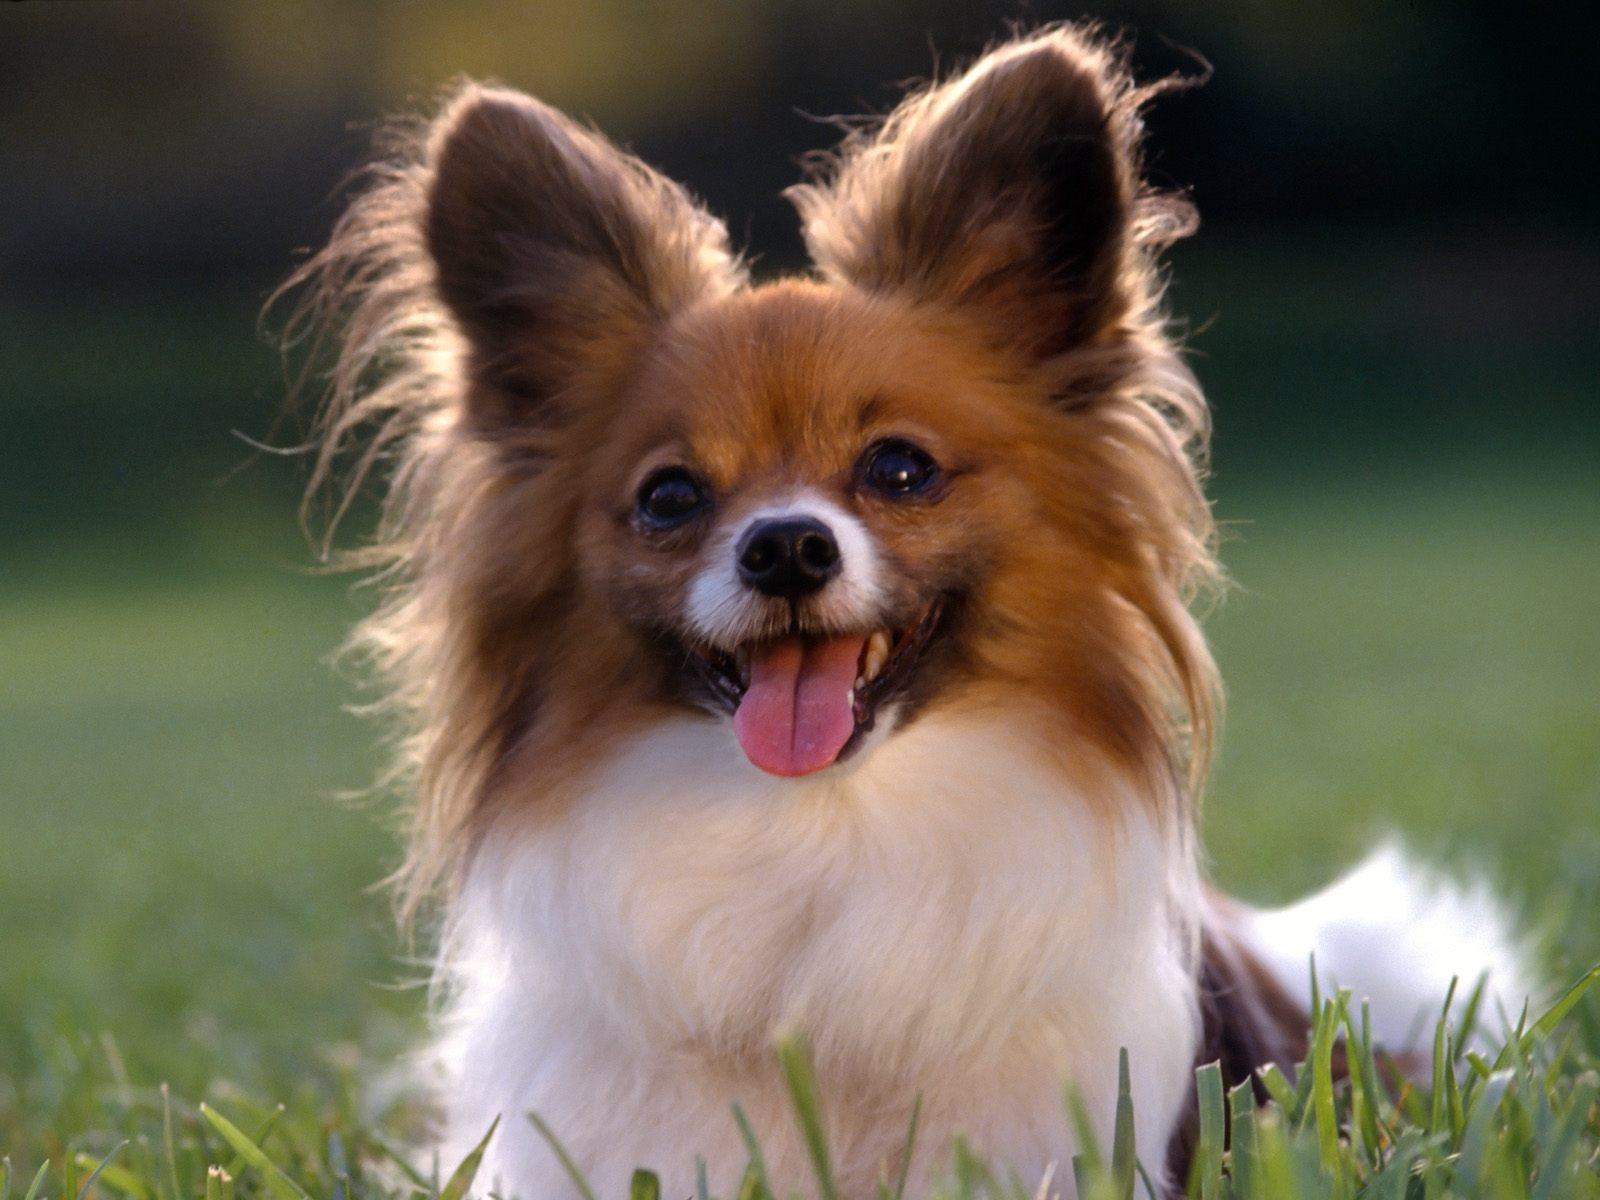 Cute Puppy Dog Wallpapers Desktop Background Wallpapers 1600x1200